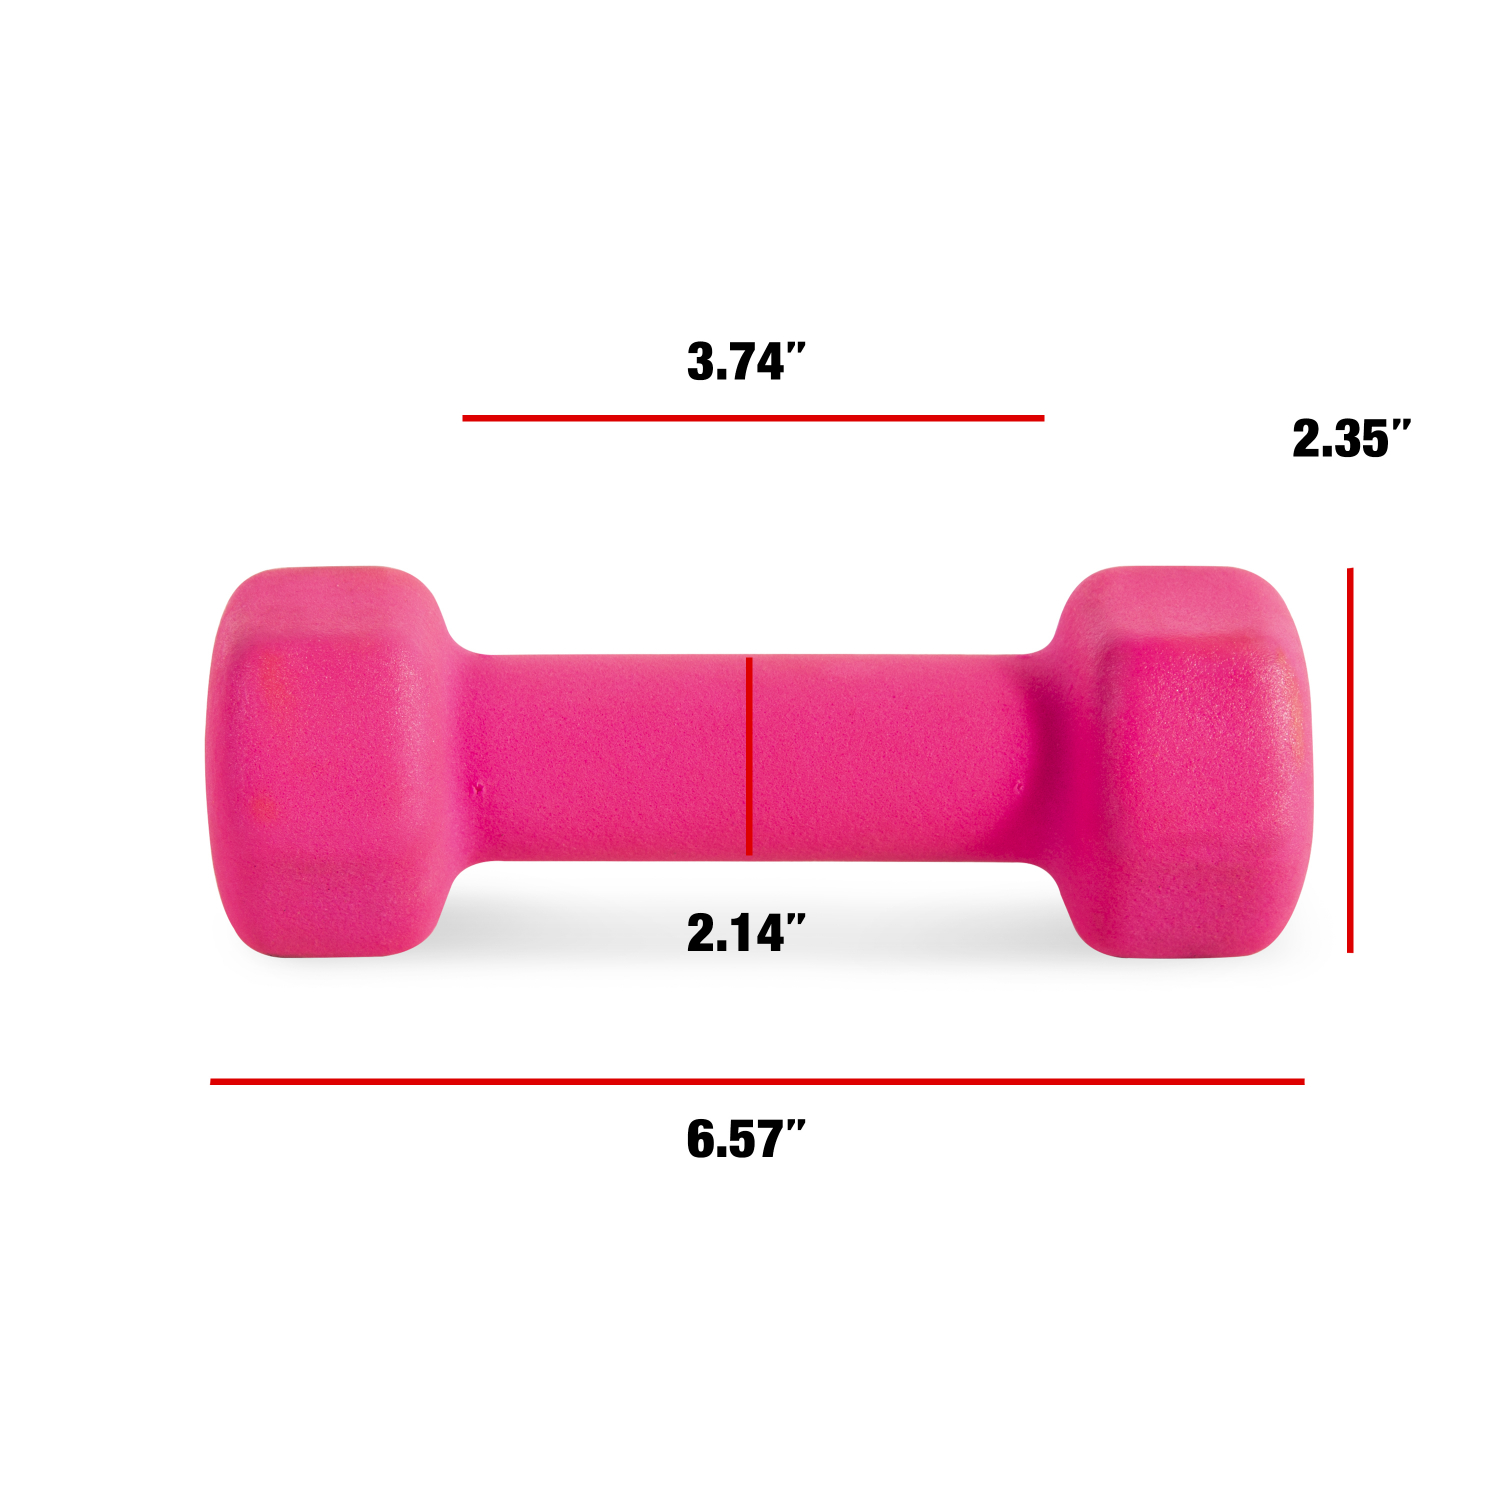 Neoprene Dumbbell Weights Strength Training Exercise Fitness Single 2 to 10 lbs.